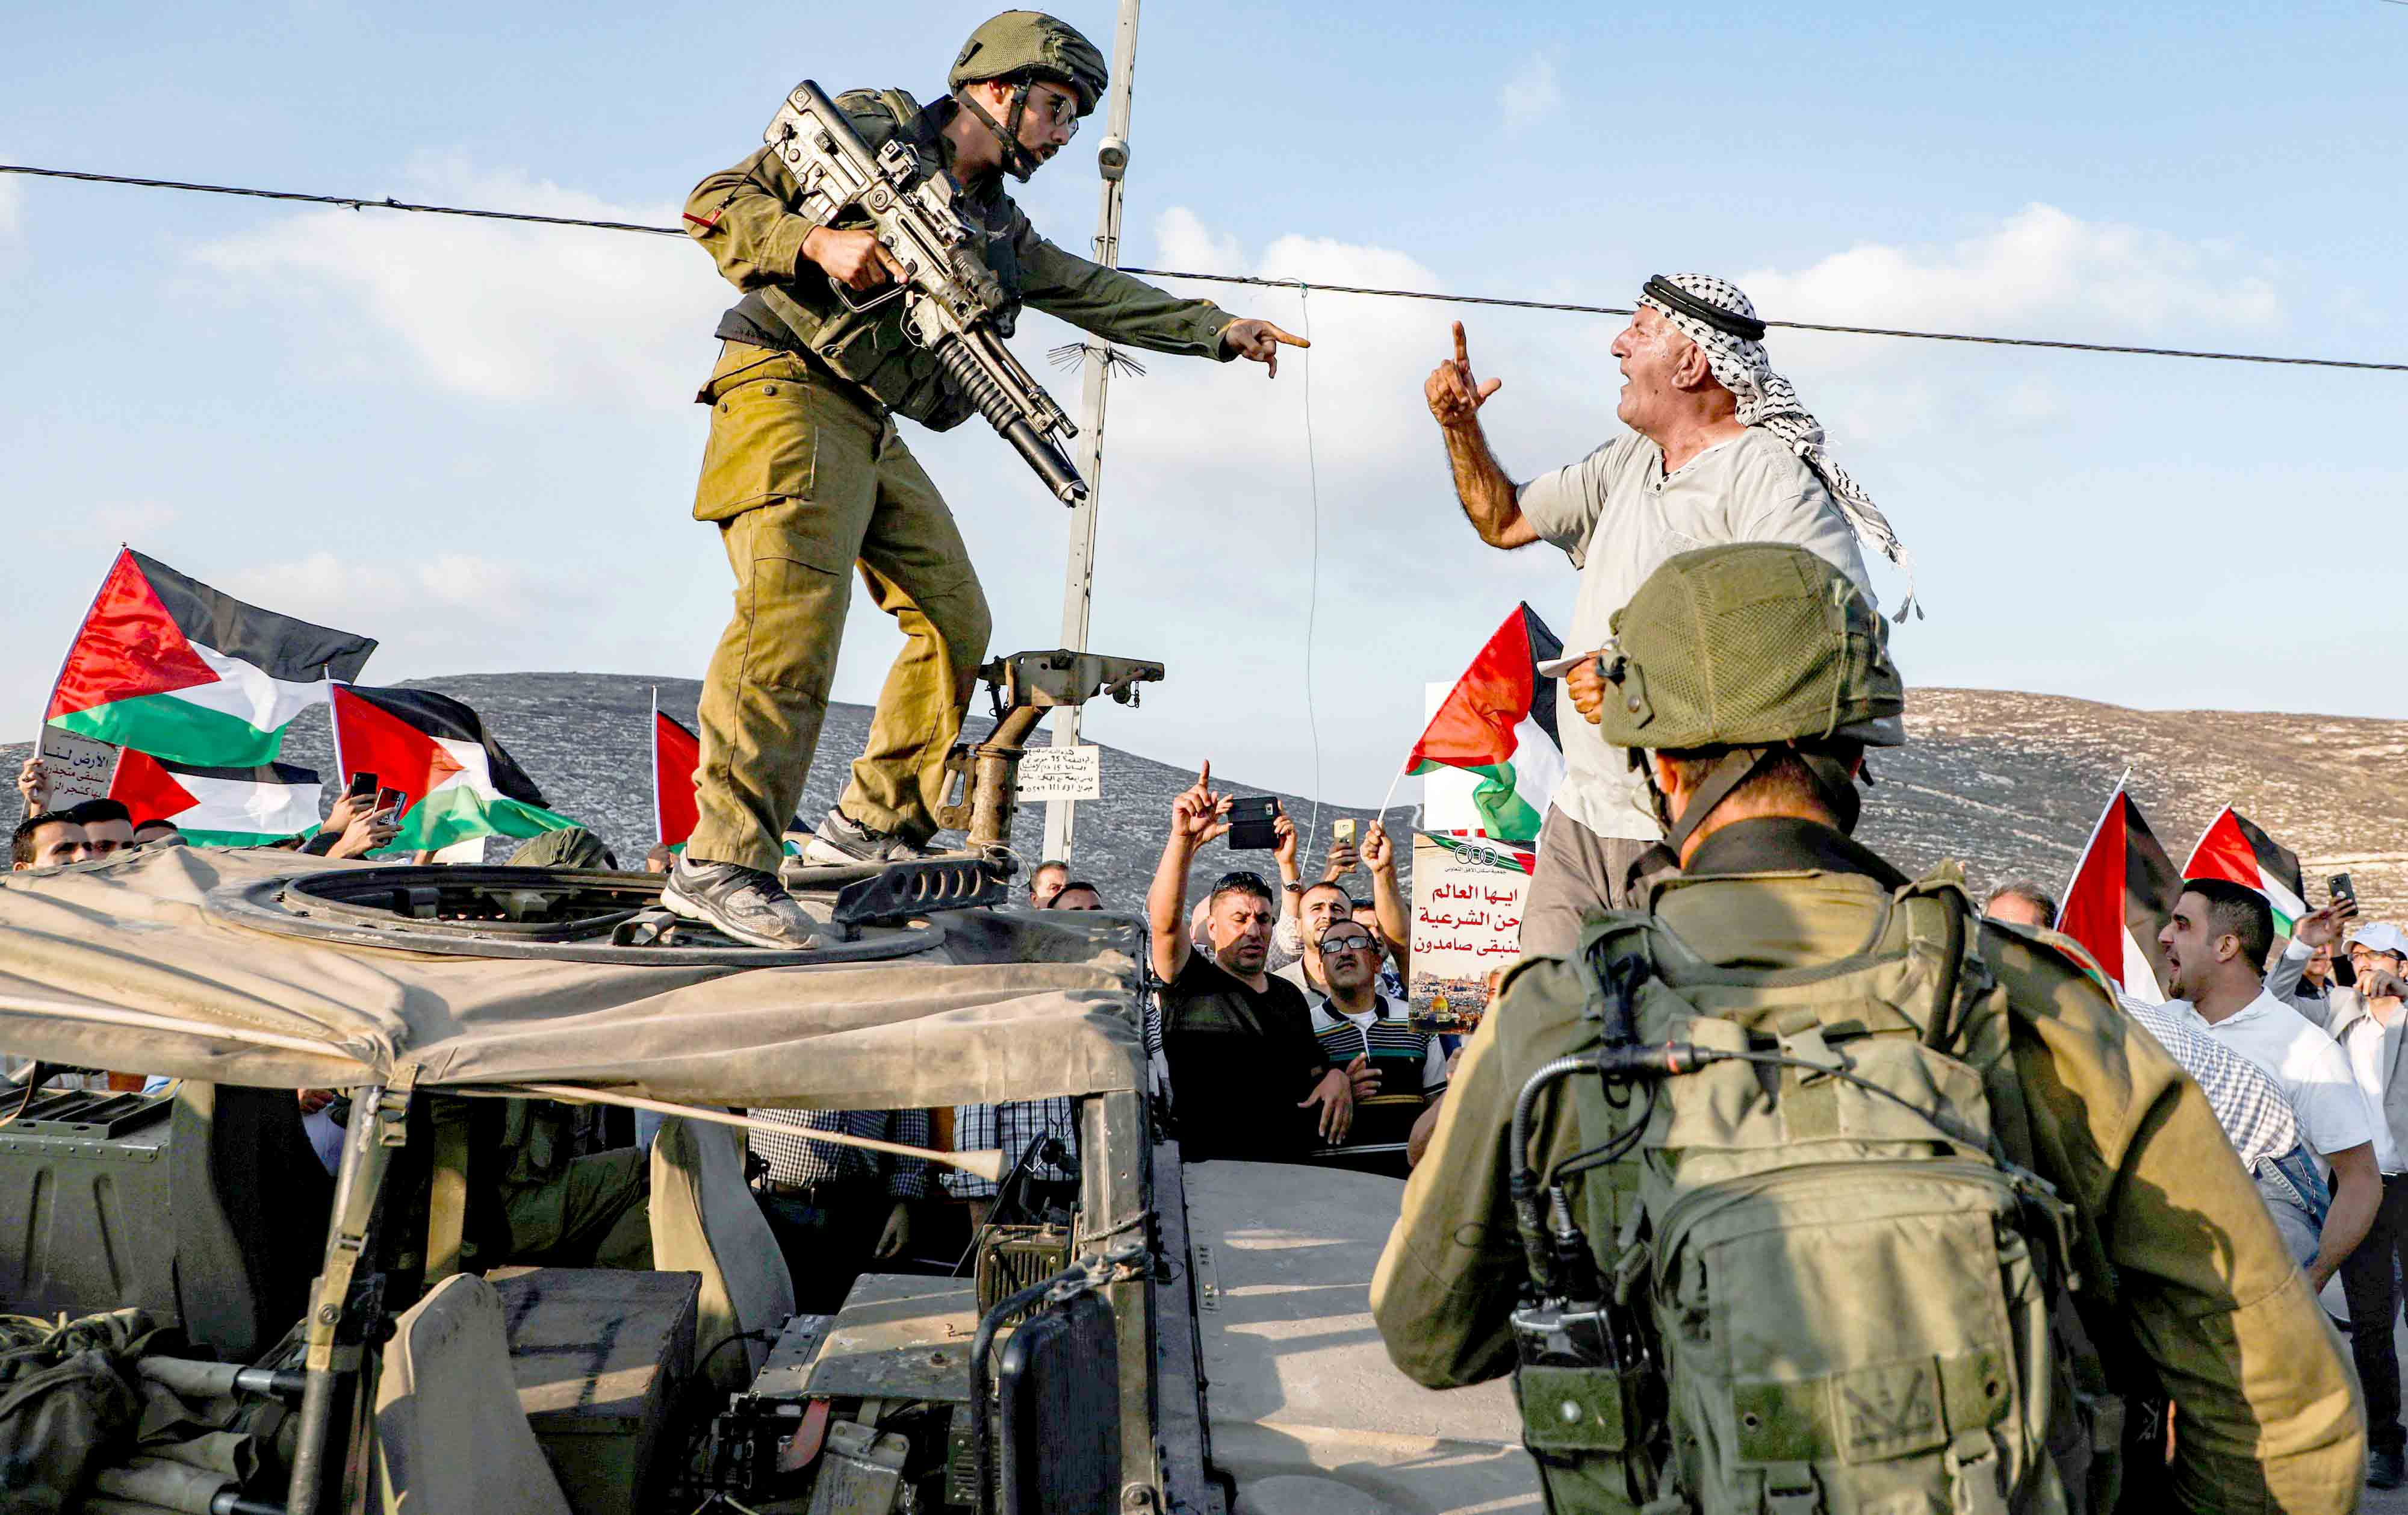 A Palestinian protester yells at an Israeli soldier as he confronts him atop an Israeli army vehicle during a protest near the Palestinian village of Naqura, last September.(AFP)